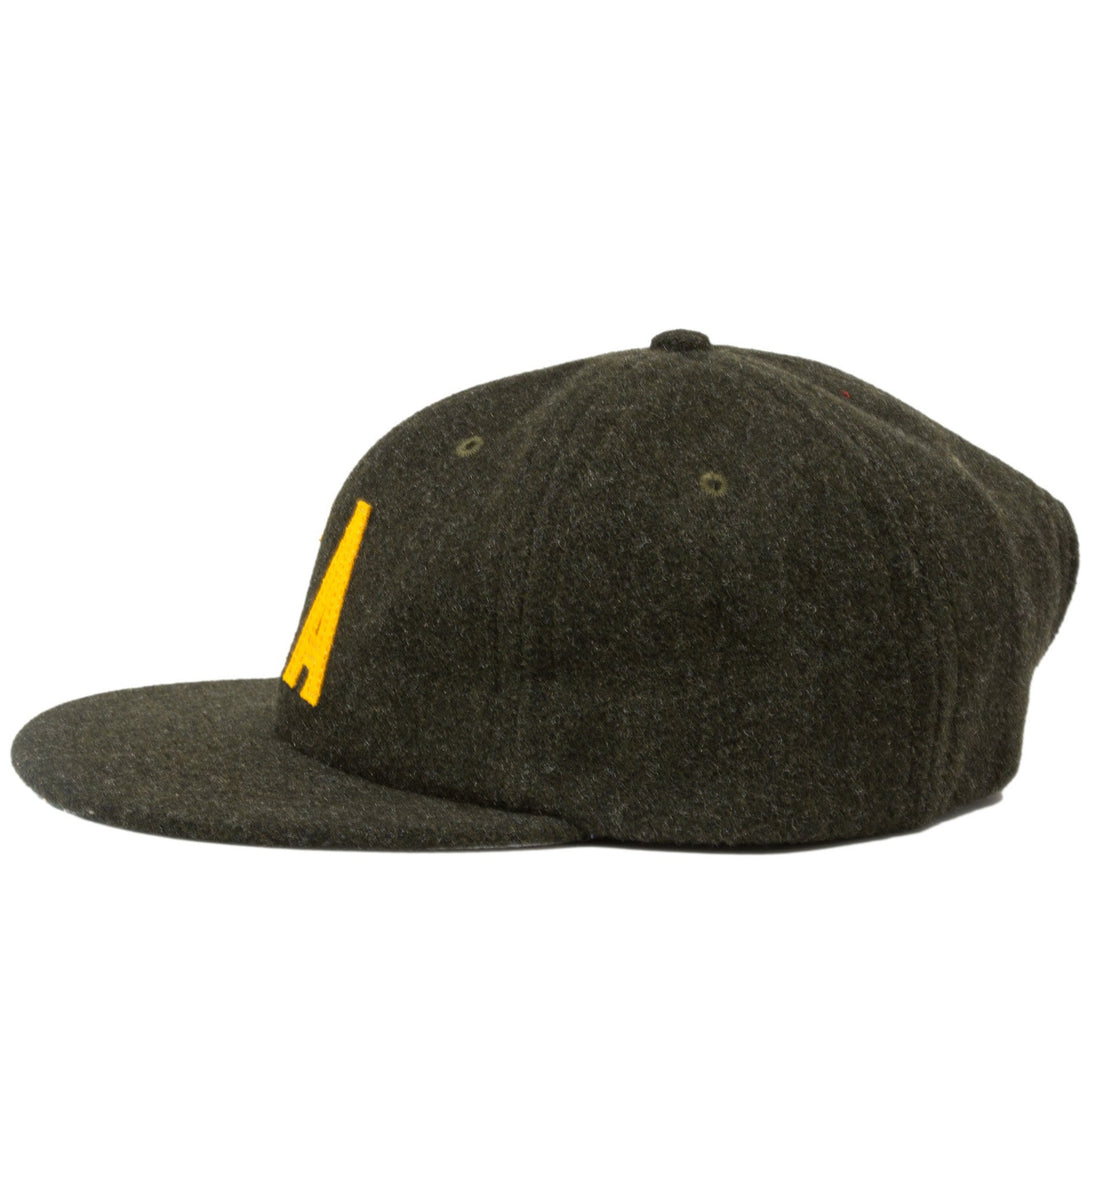 INR Best Coast Hat - Accessories: Headwear: Hats - Iron and Resin